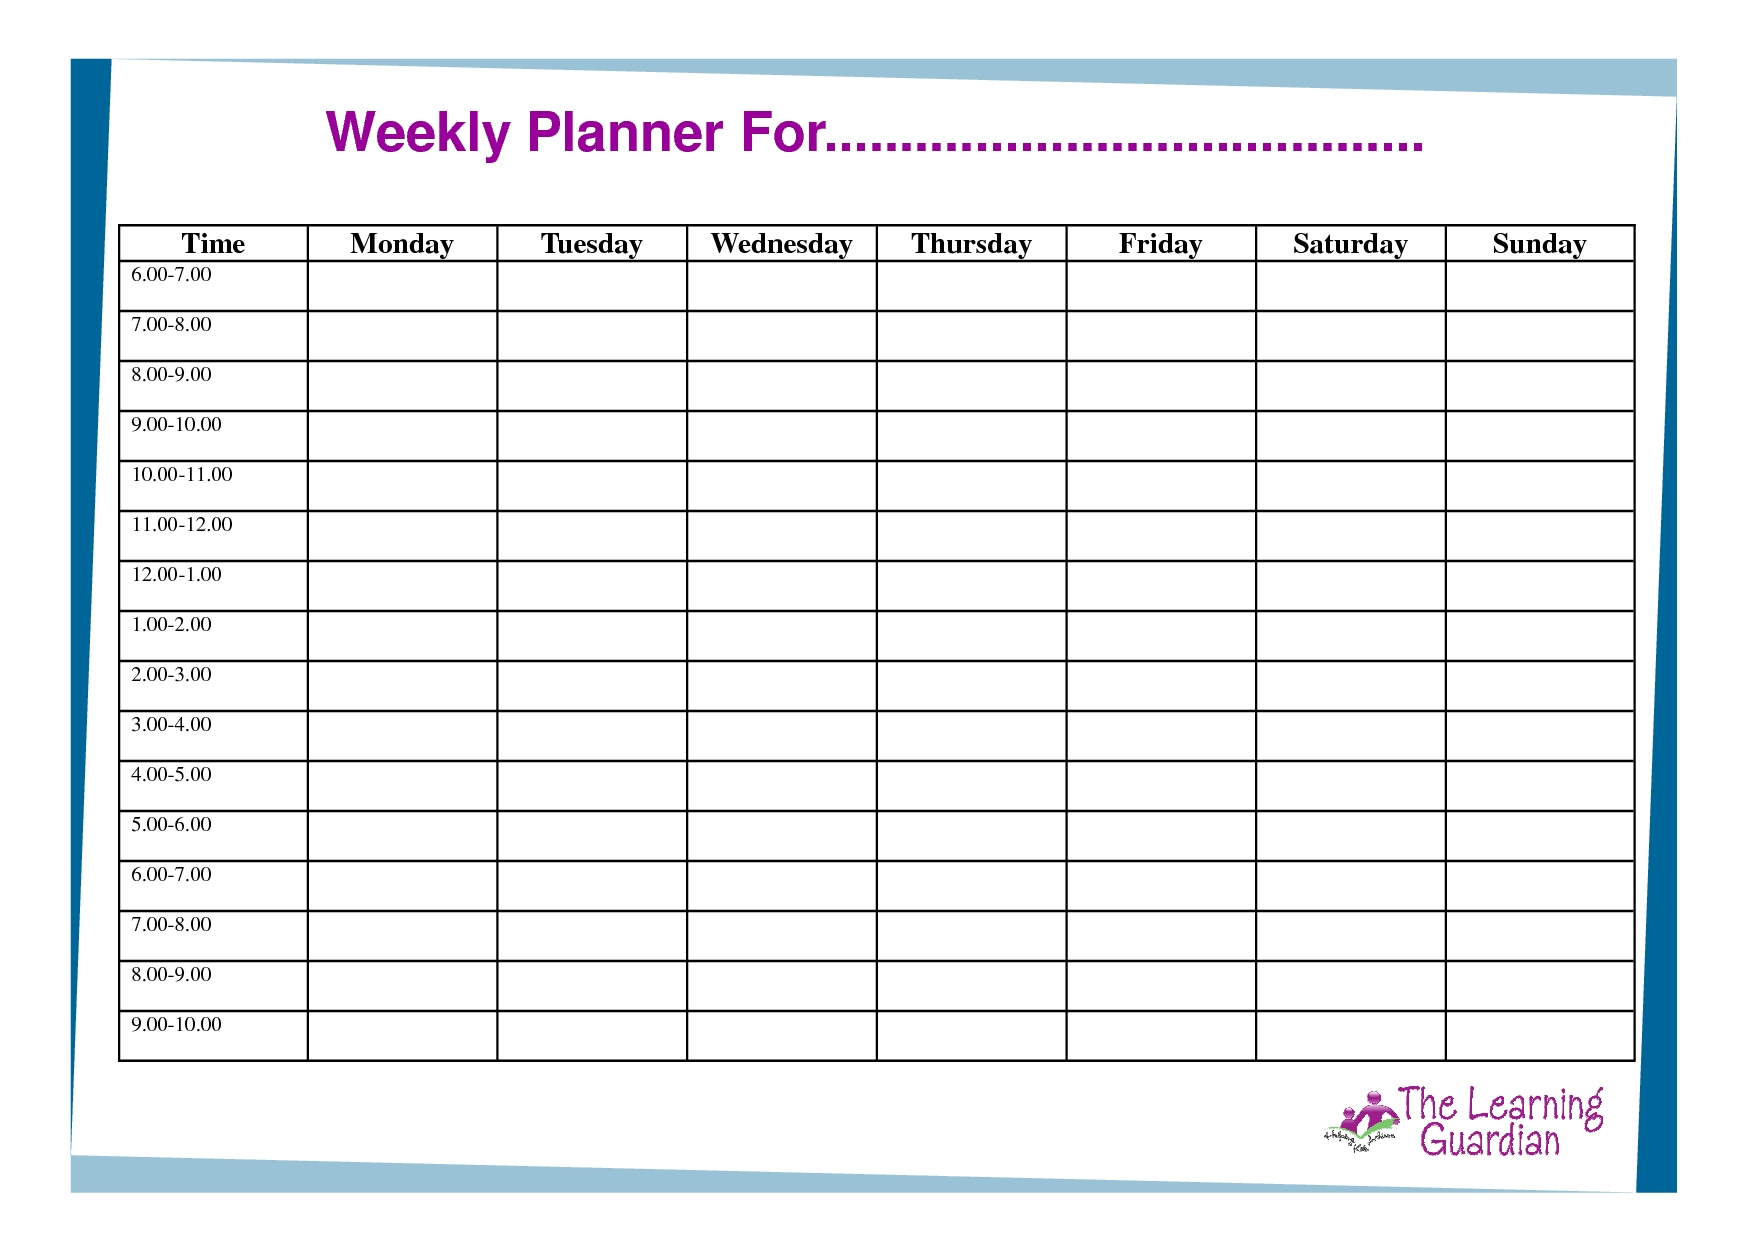 Weekly Planner With Time Slots Word Template - Calendar Schedule Templates With Hour Time Slots